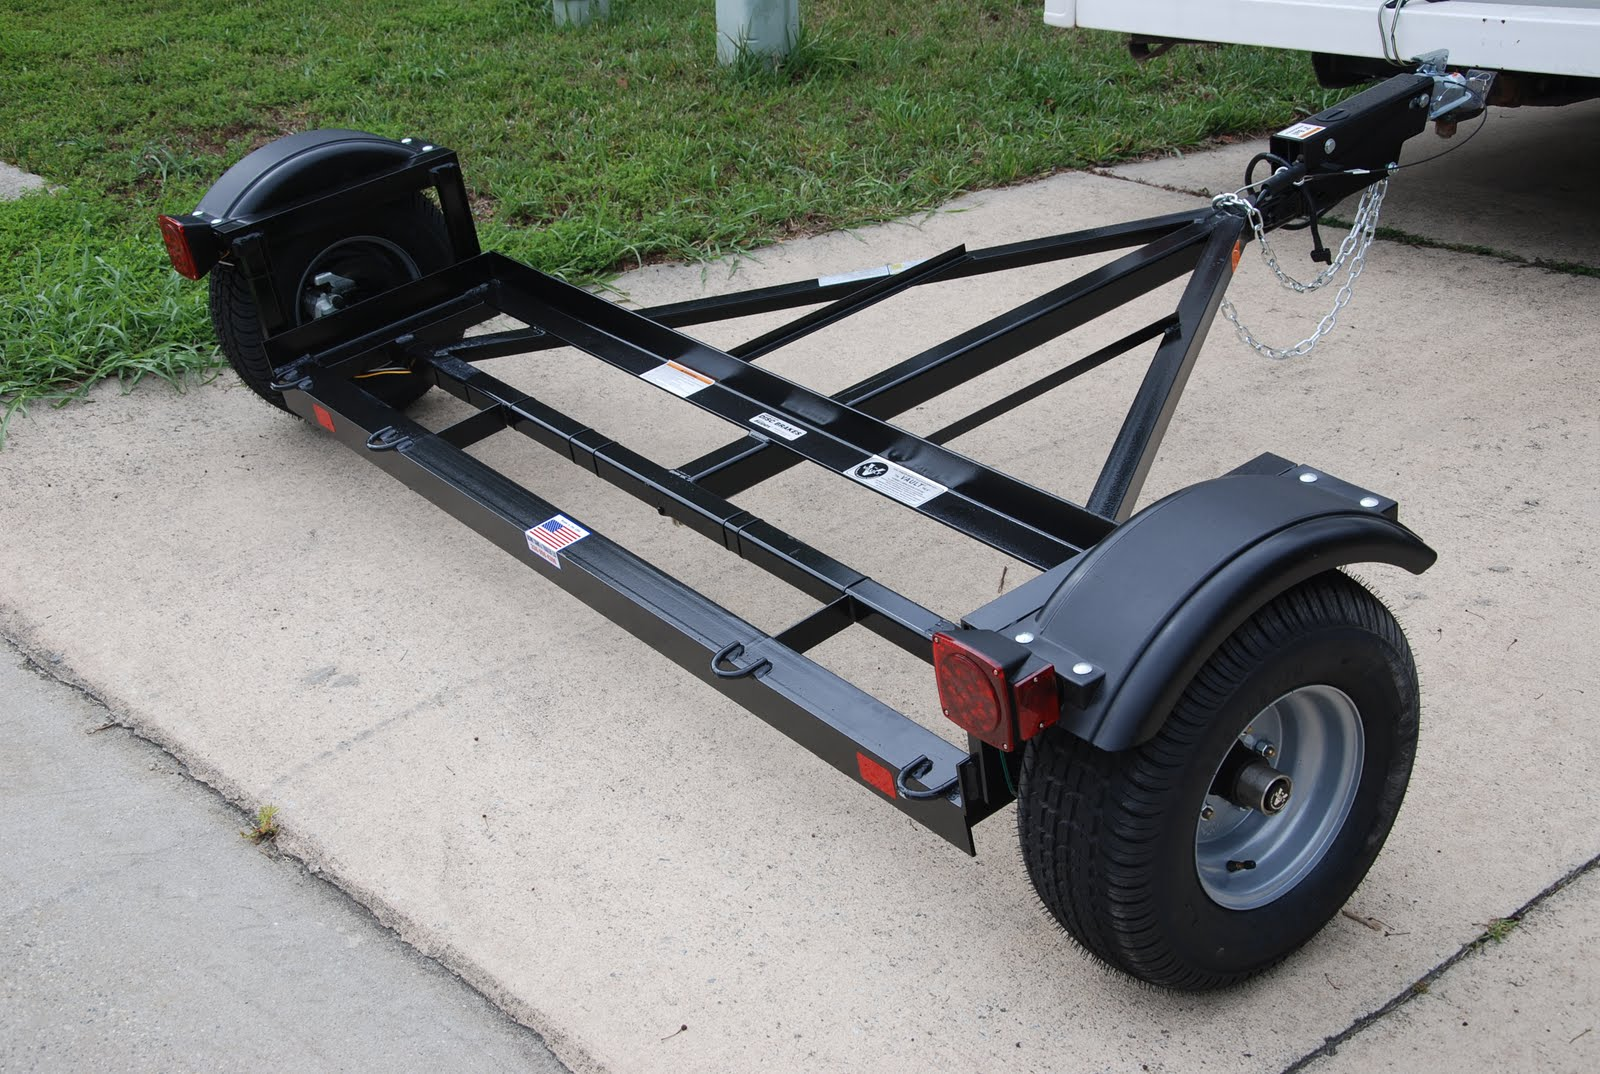 rv towing guide read this before you do anything rvshare com tow dolly plans pdf tow dolly plans diagram autos post #12